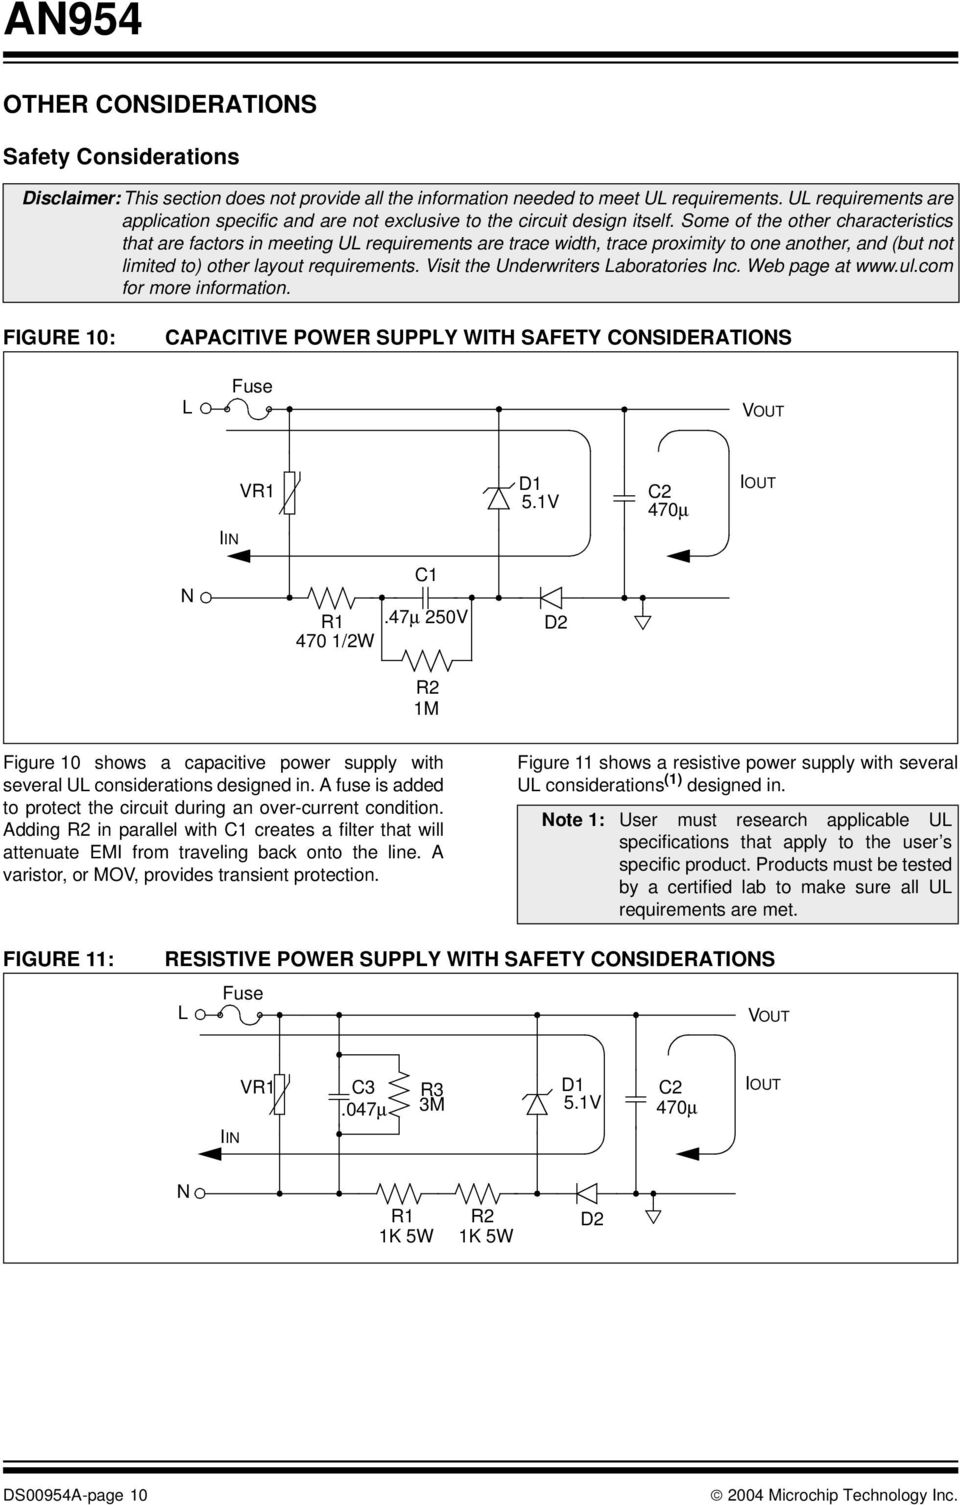 Transformerless Power Supplies Resistive And Capacitive Pdf Supply Design Part 2 Some Of The Other Characteristics That Are Factors In Meeting Ul Requirements Trace Width 11 As With